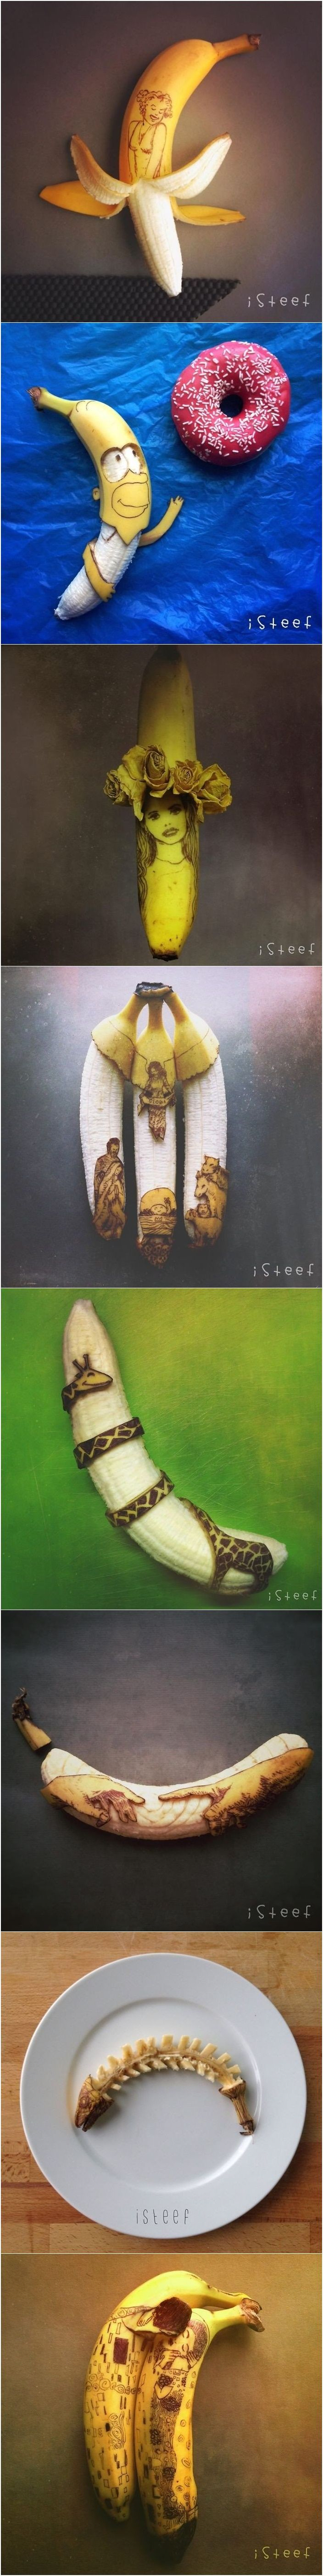 Banana Art By Stephan Brusche